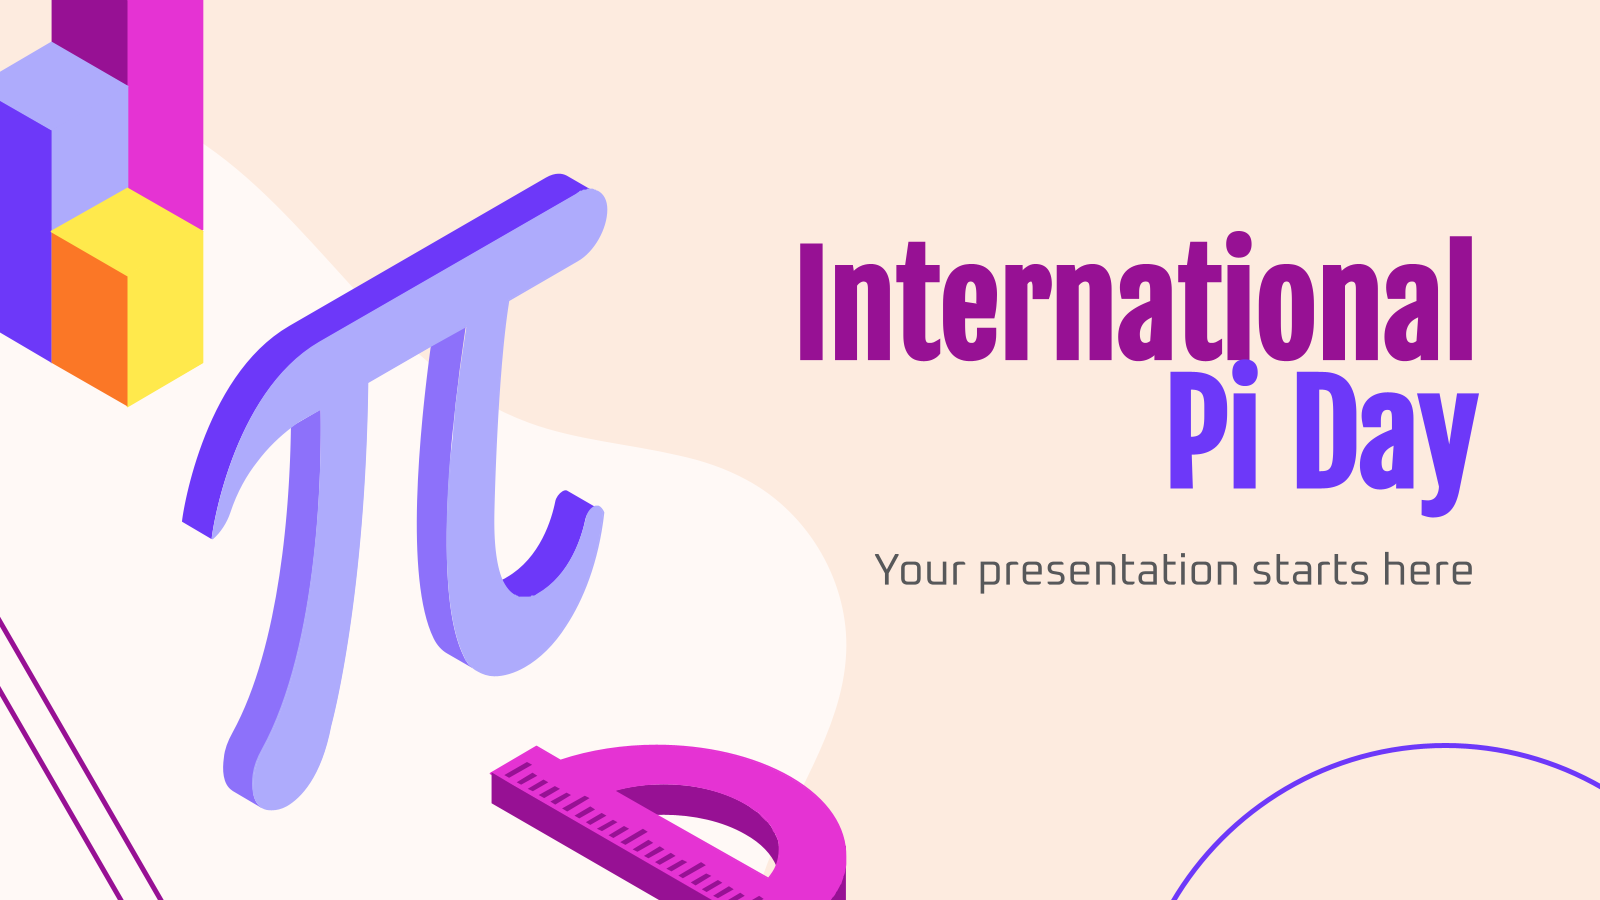 International Pi Day presentation template